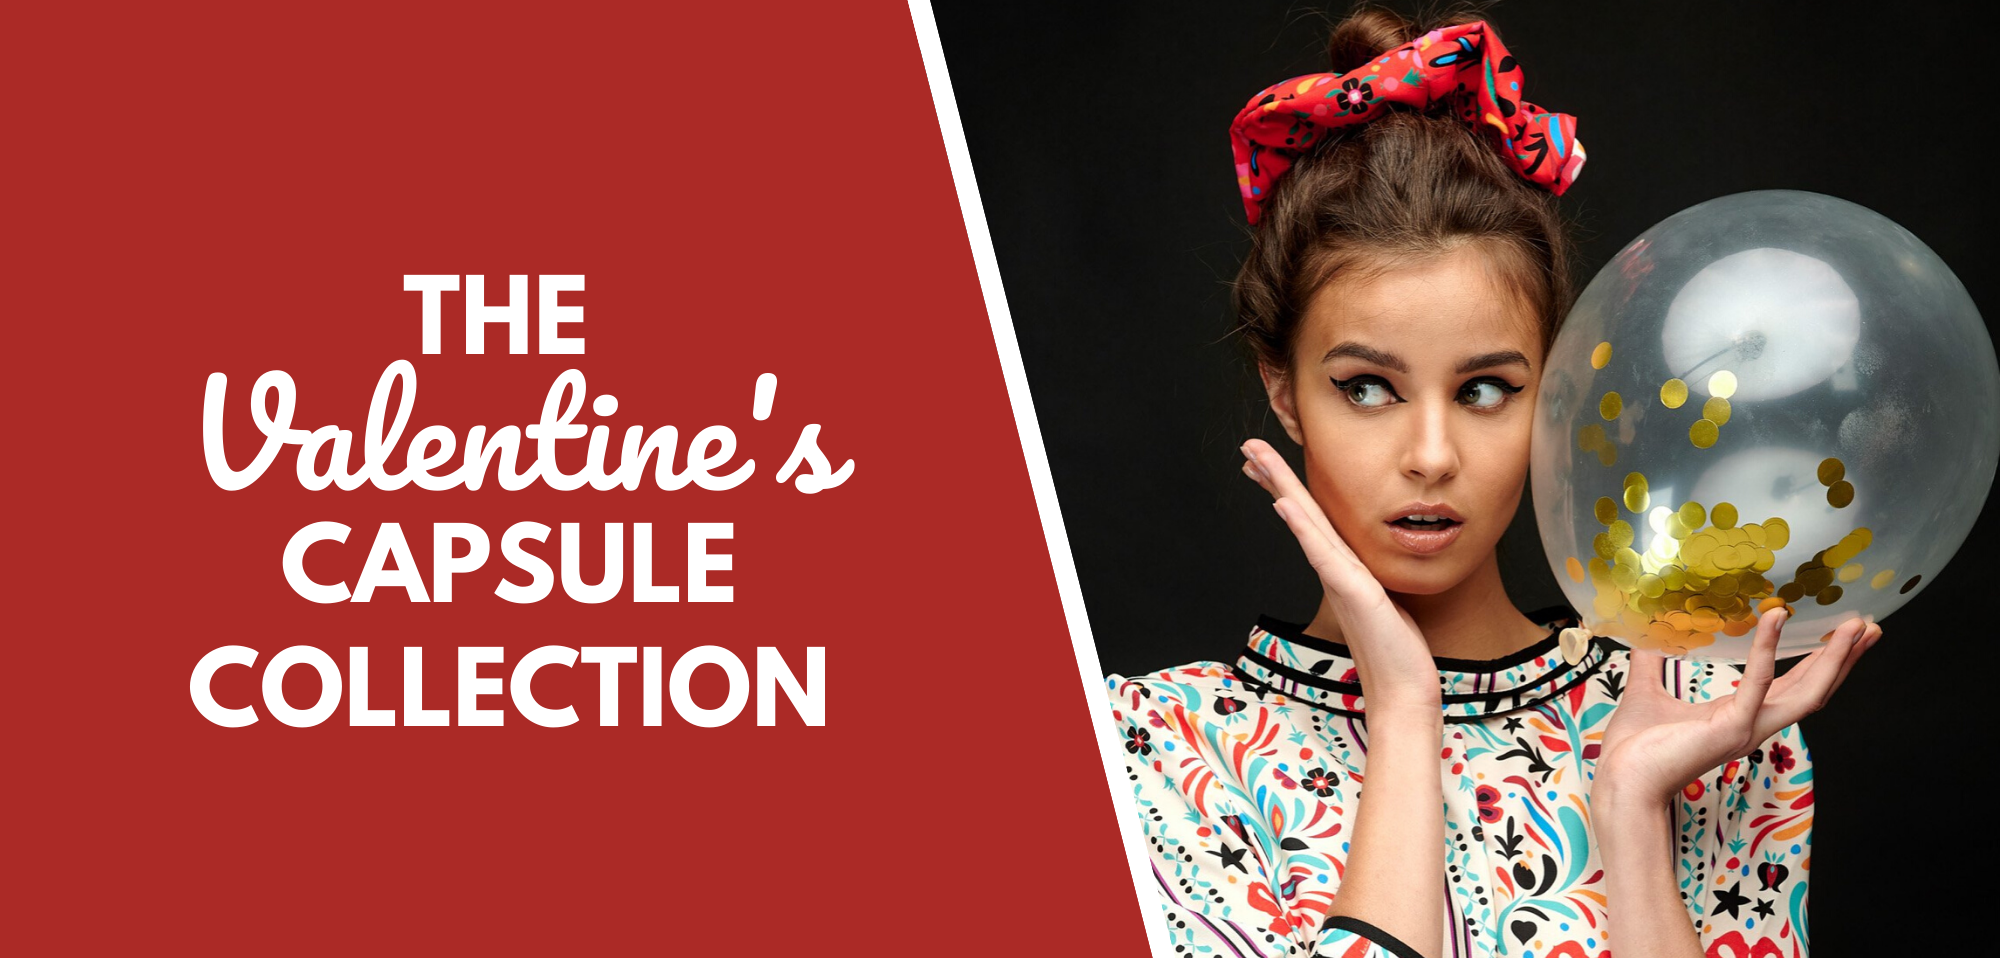 The Valentine's Capsule Collection.